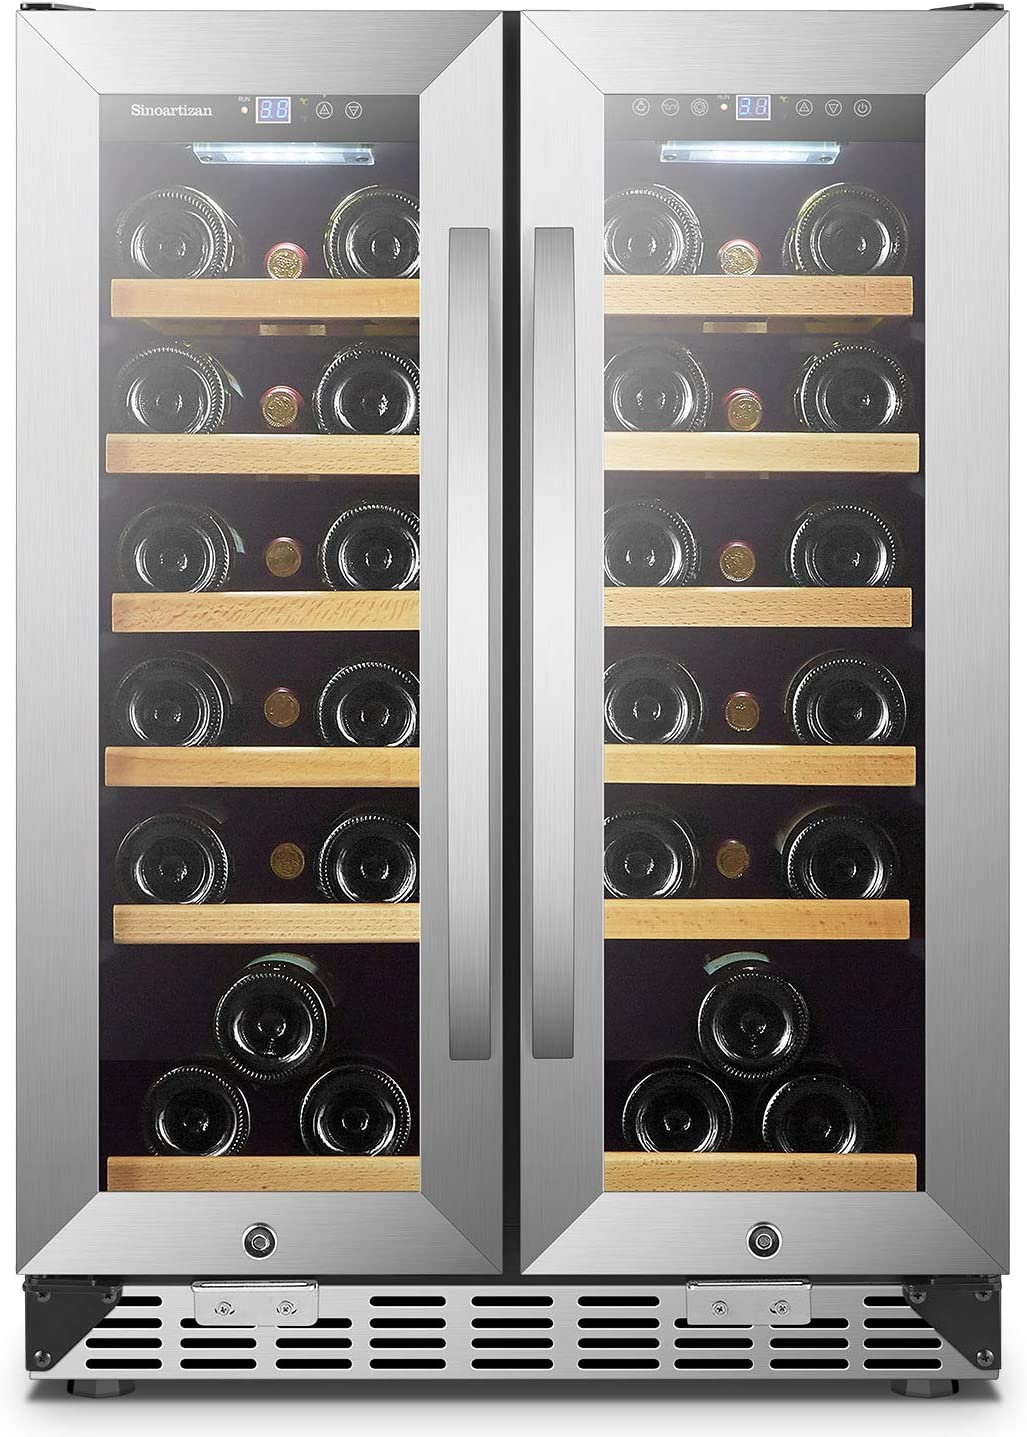 Sinoartizan 24 Inch Wine Cooler Refrigerator with Stainless Steel French Doors, Dual Zone Wine Fridge for Built In